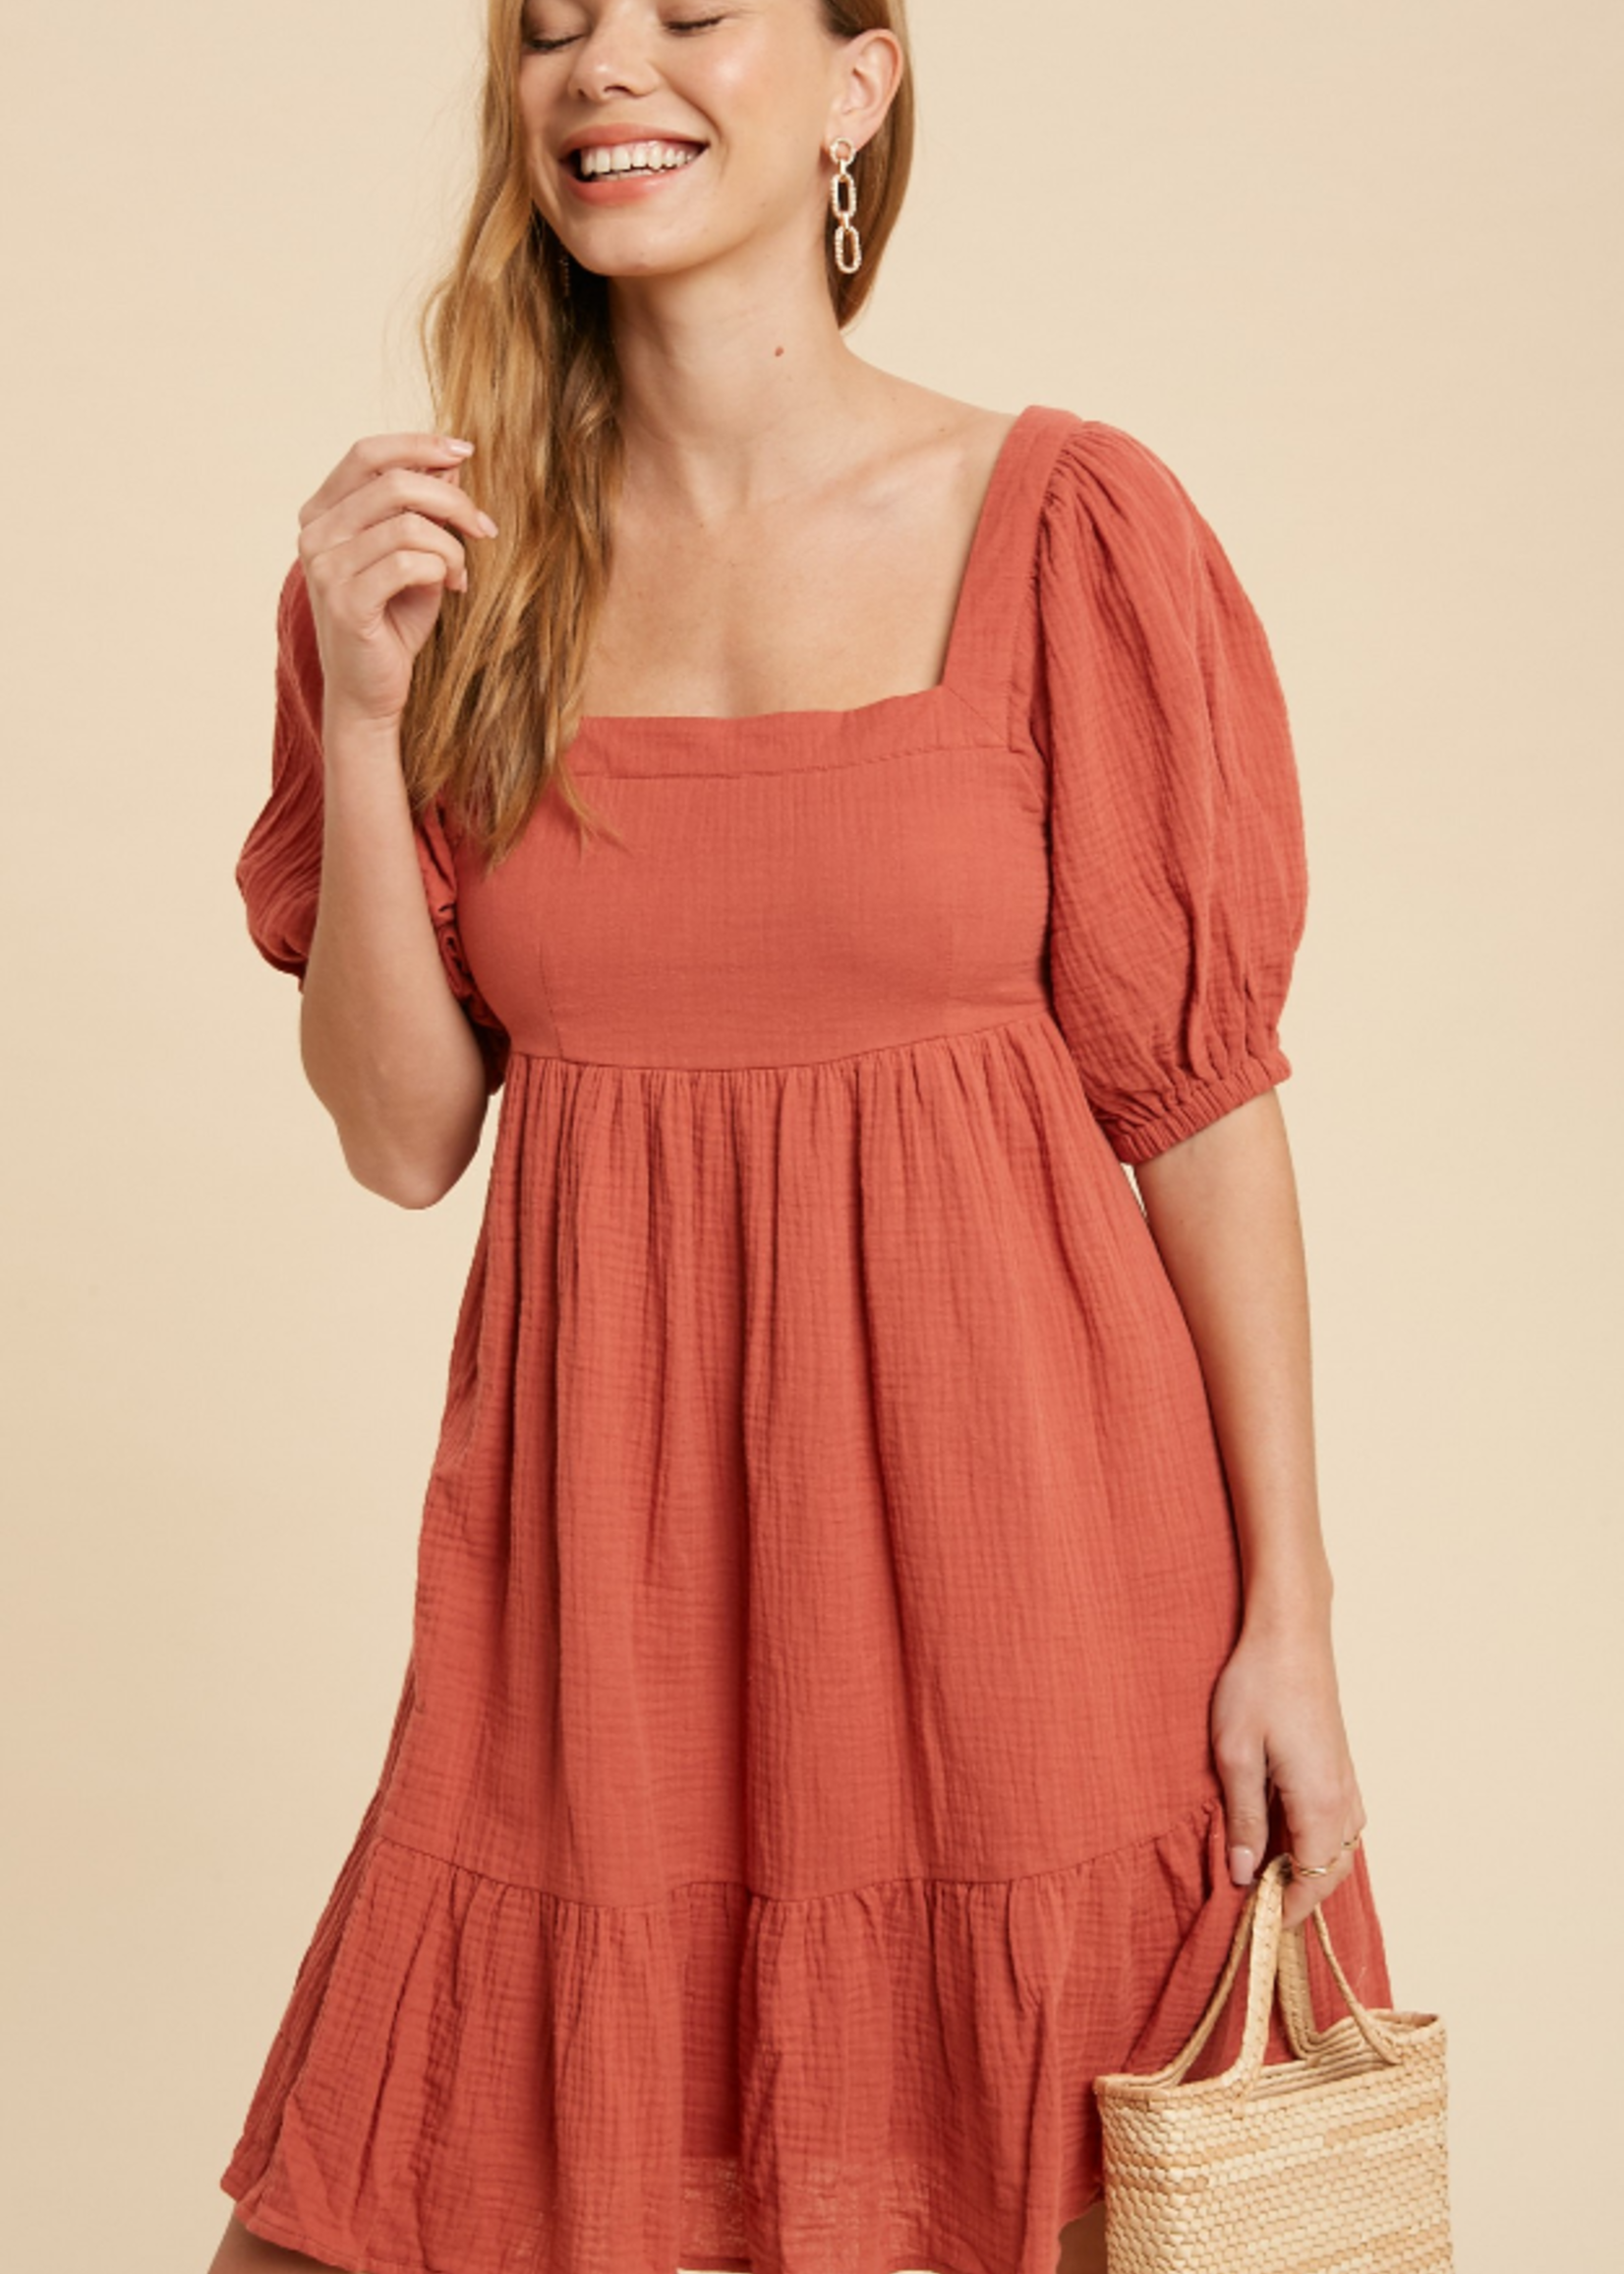 Cotton Gauze Babydoll Dress - Coral